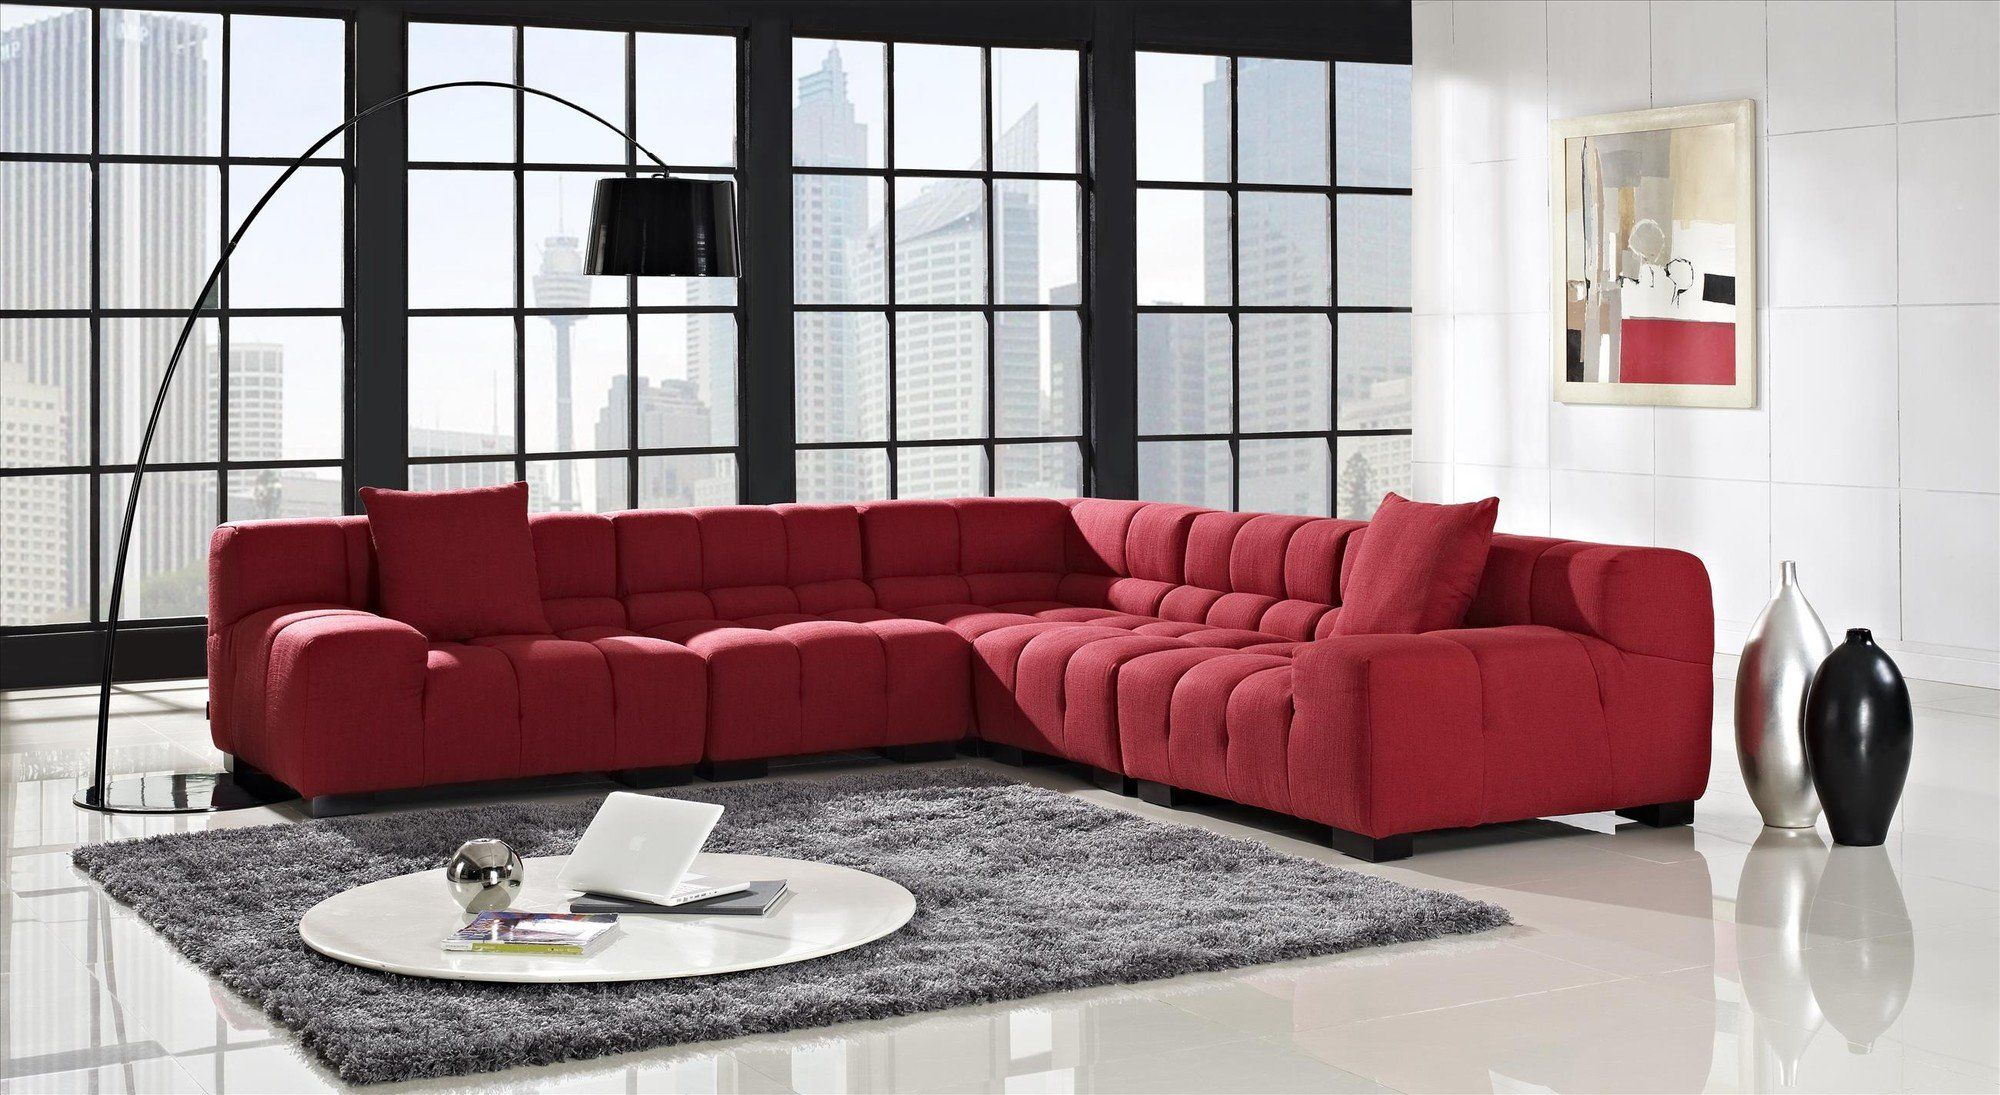 Contemporary Living Room Sofas Inspirational How To Choose Modern Sectional Sofas For Your Home